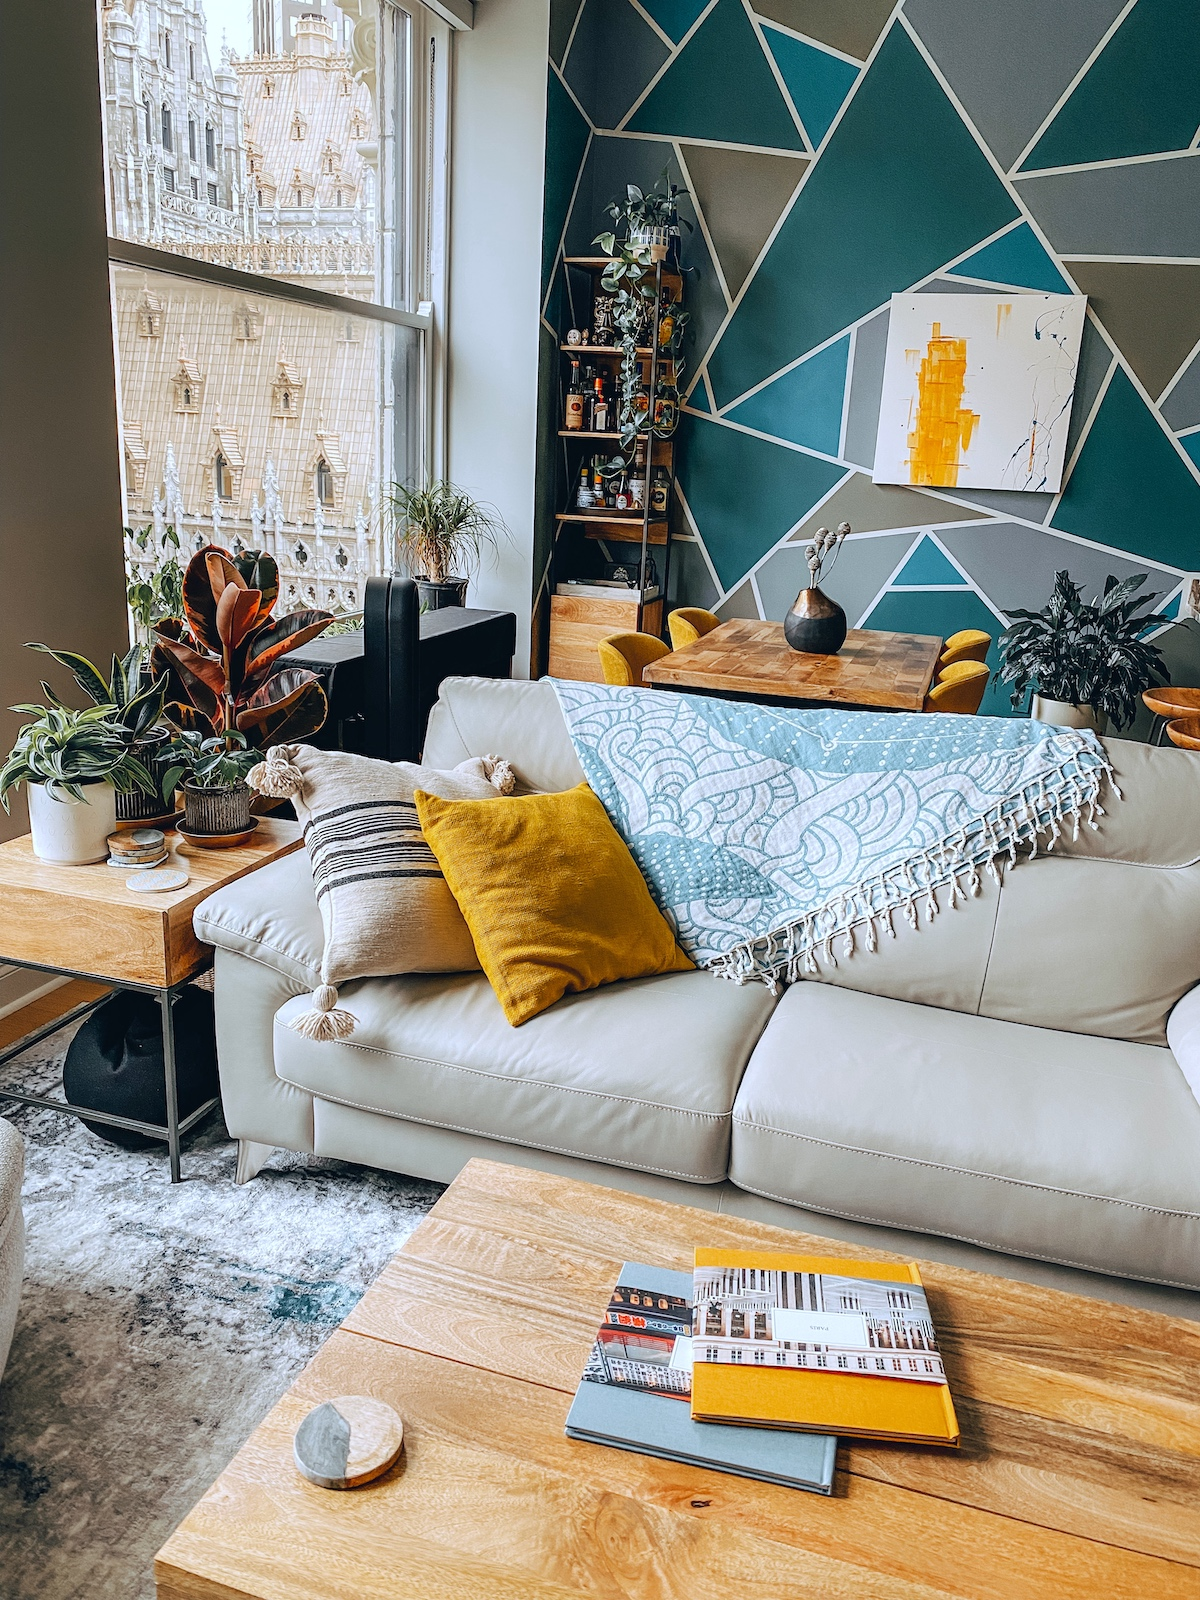 An Artifact Uprising Hardcover Photo Books on coffee table in artsy apartment with honeycomb decor accents